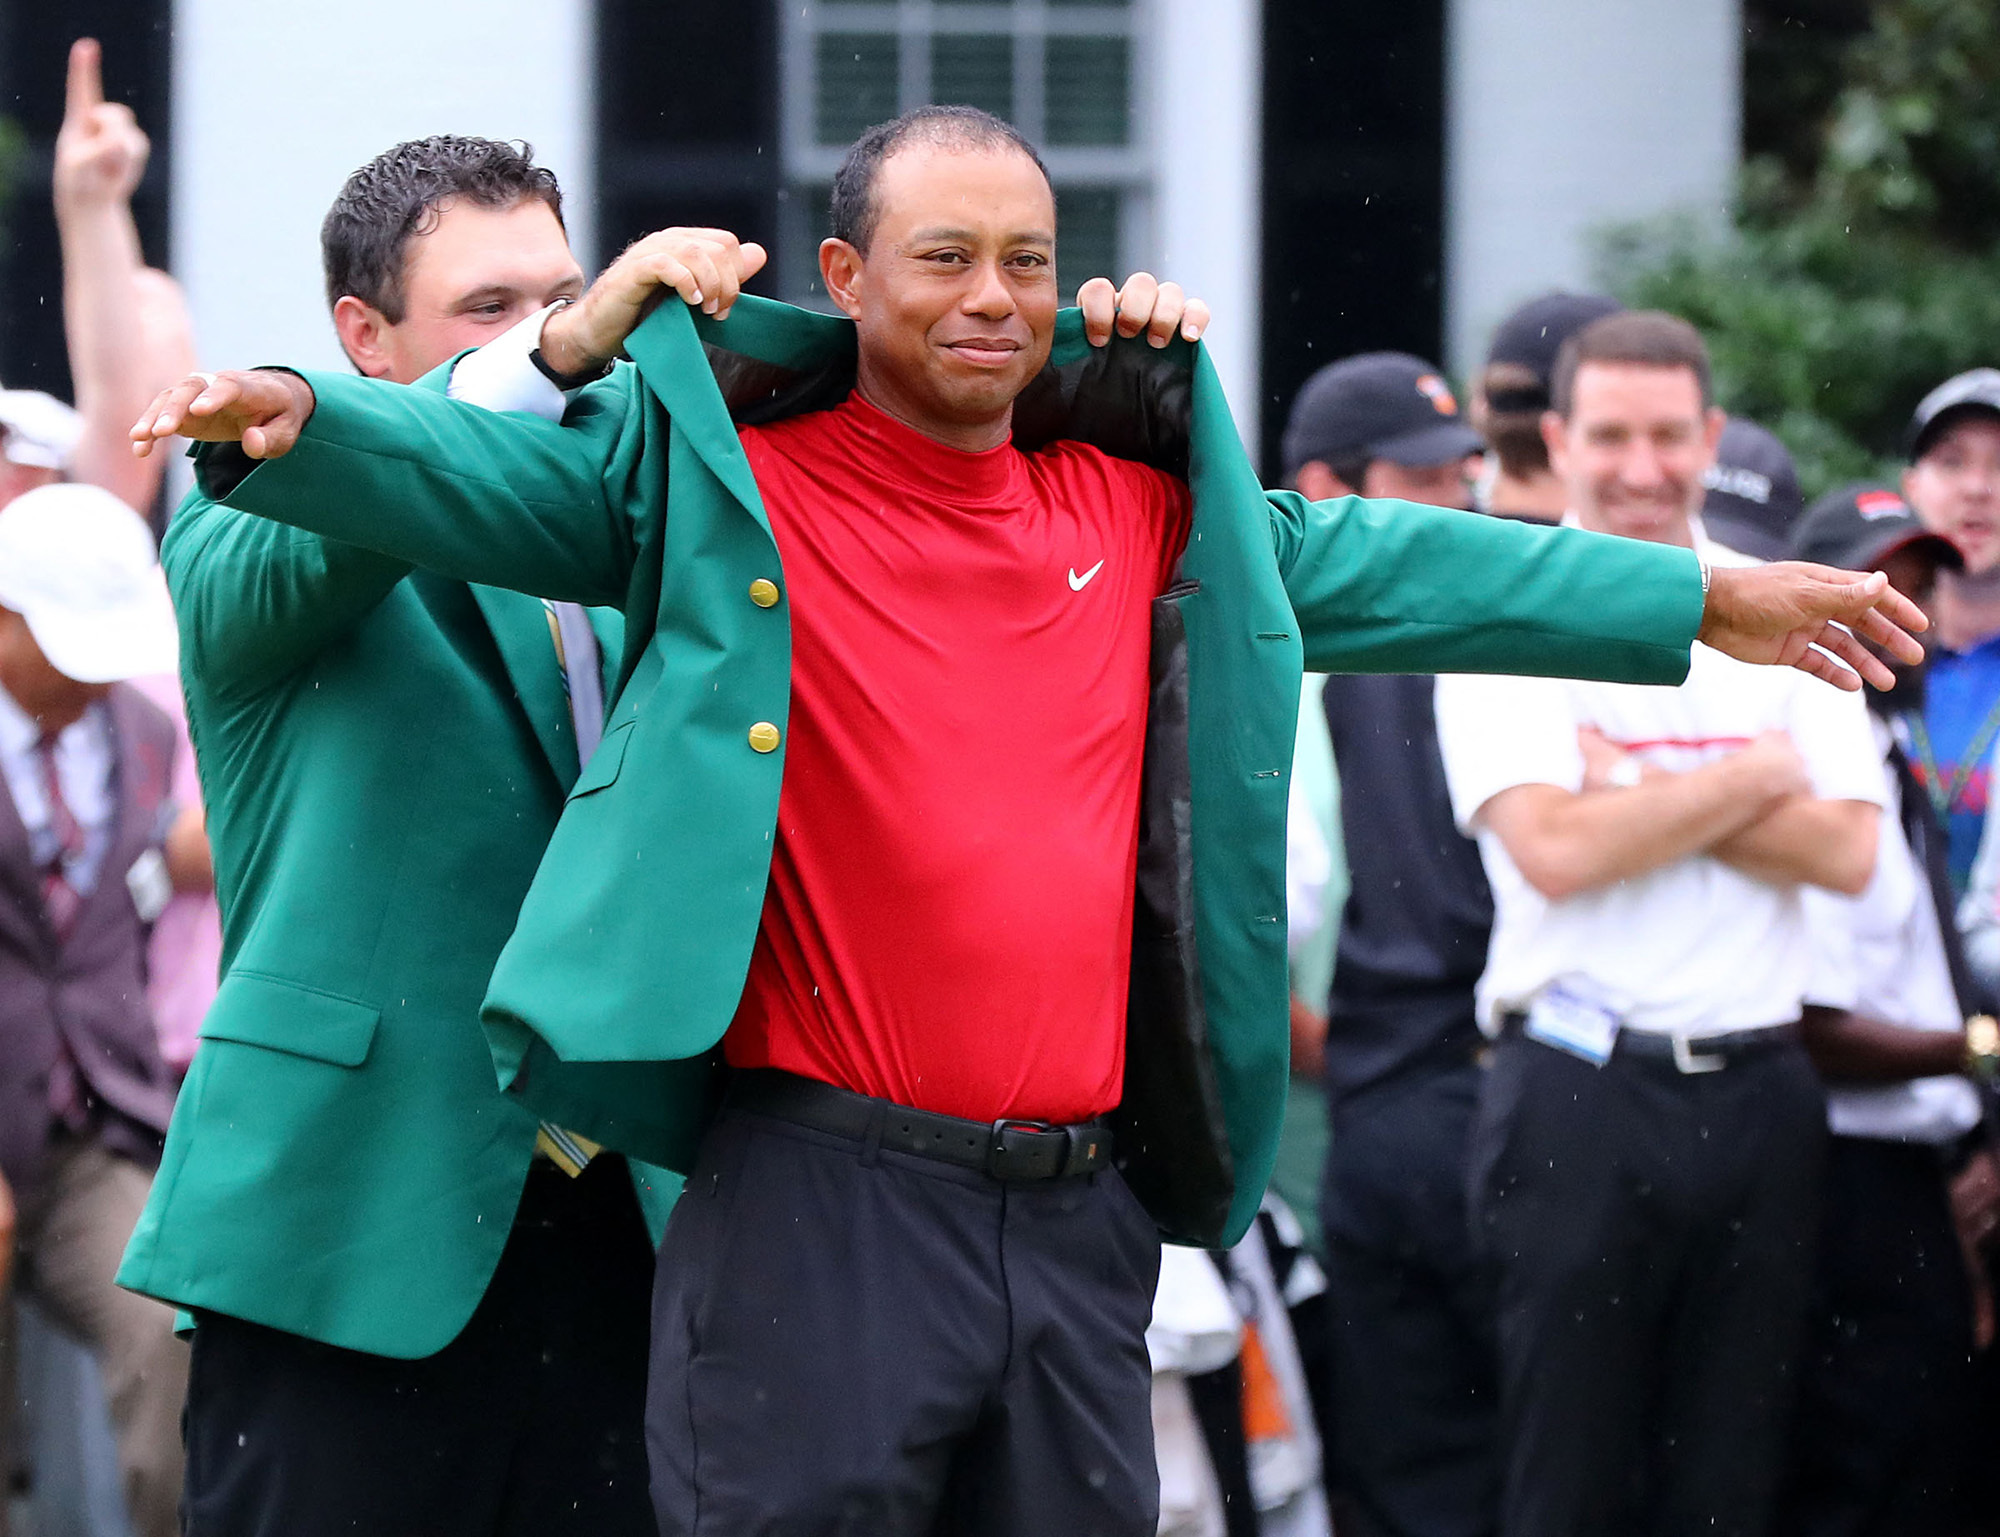 Woods collects his green jacket from Patrick Reed. Image: PA Images